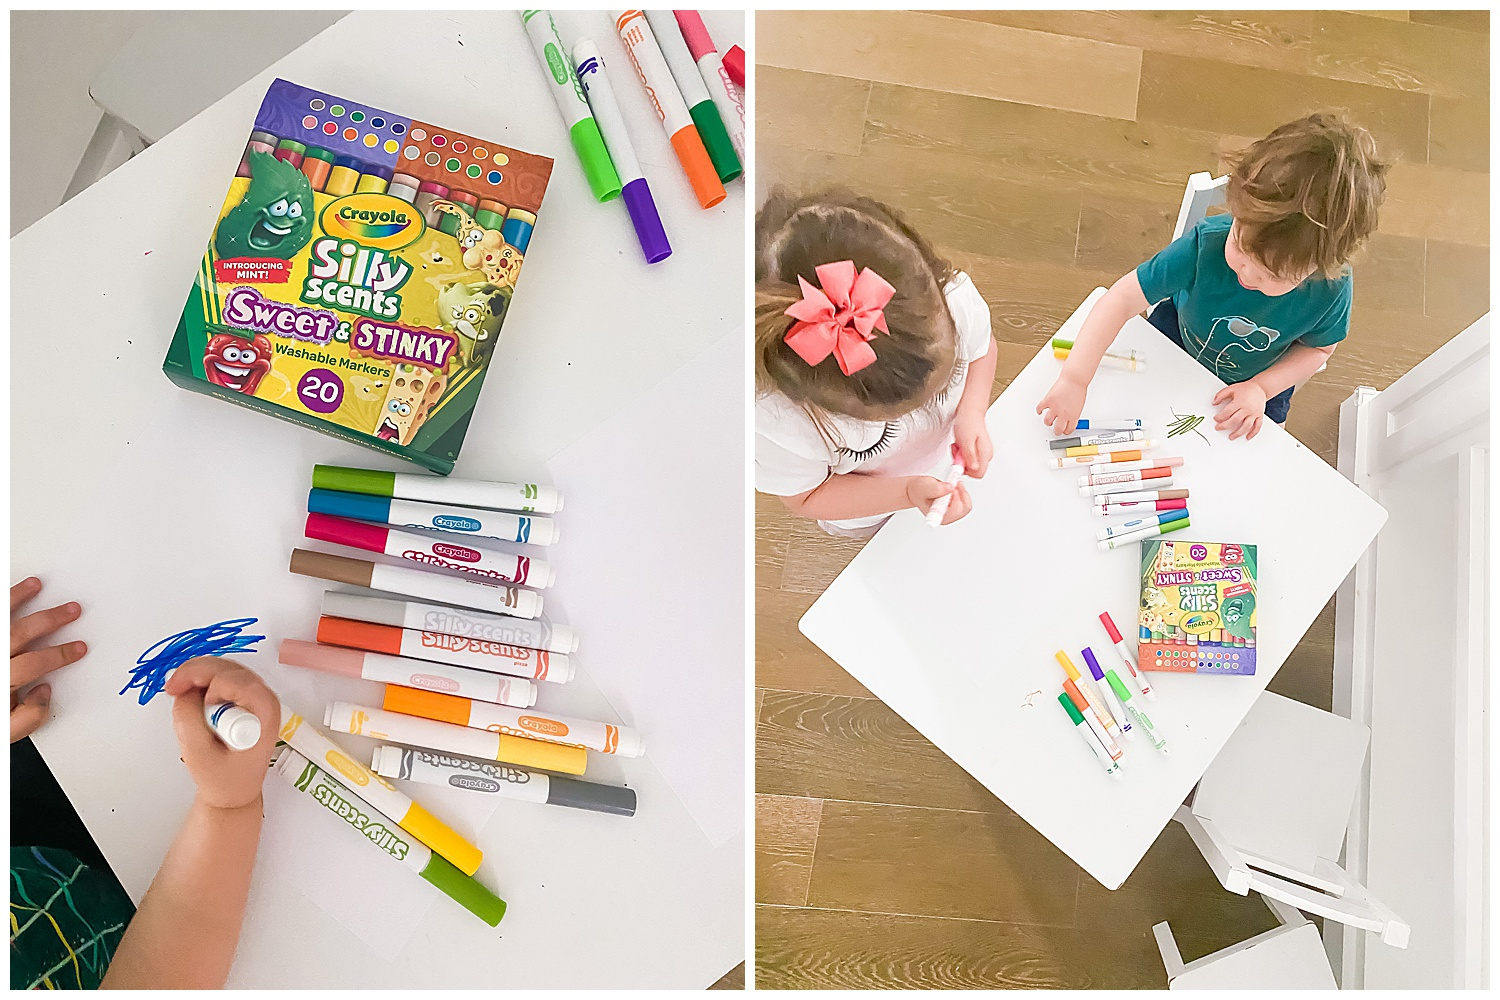 silly scents sweet & stinky markers